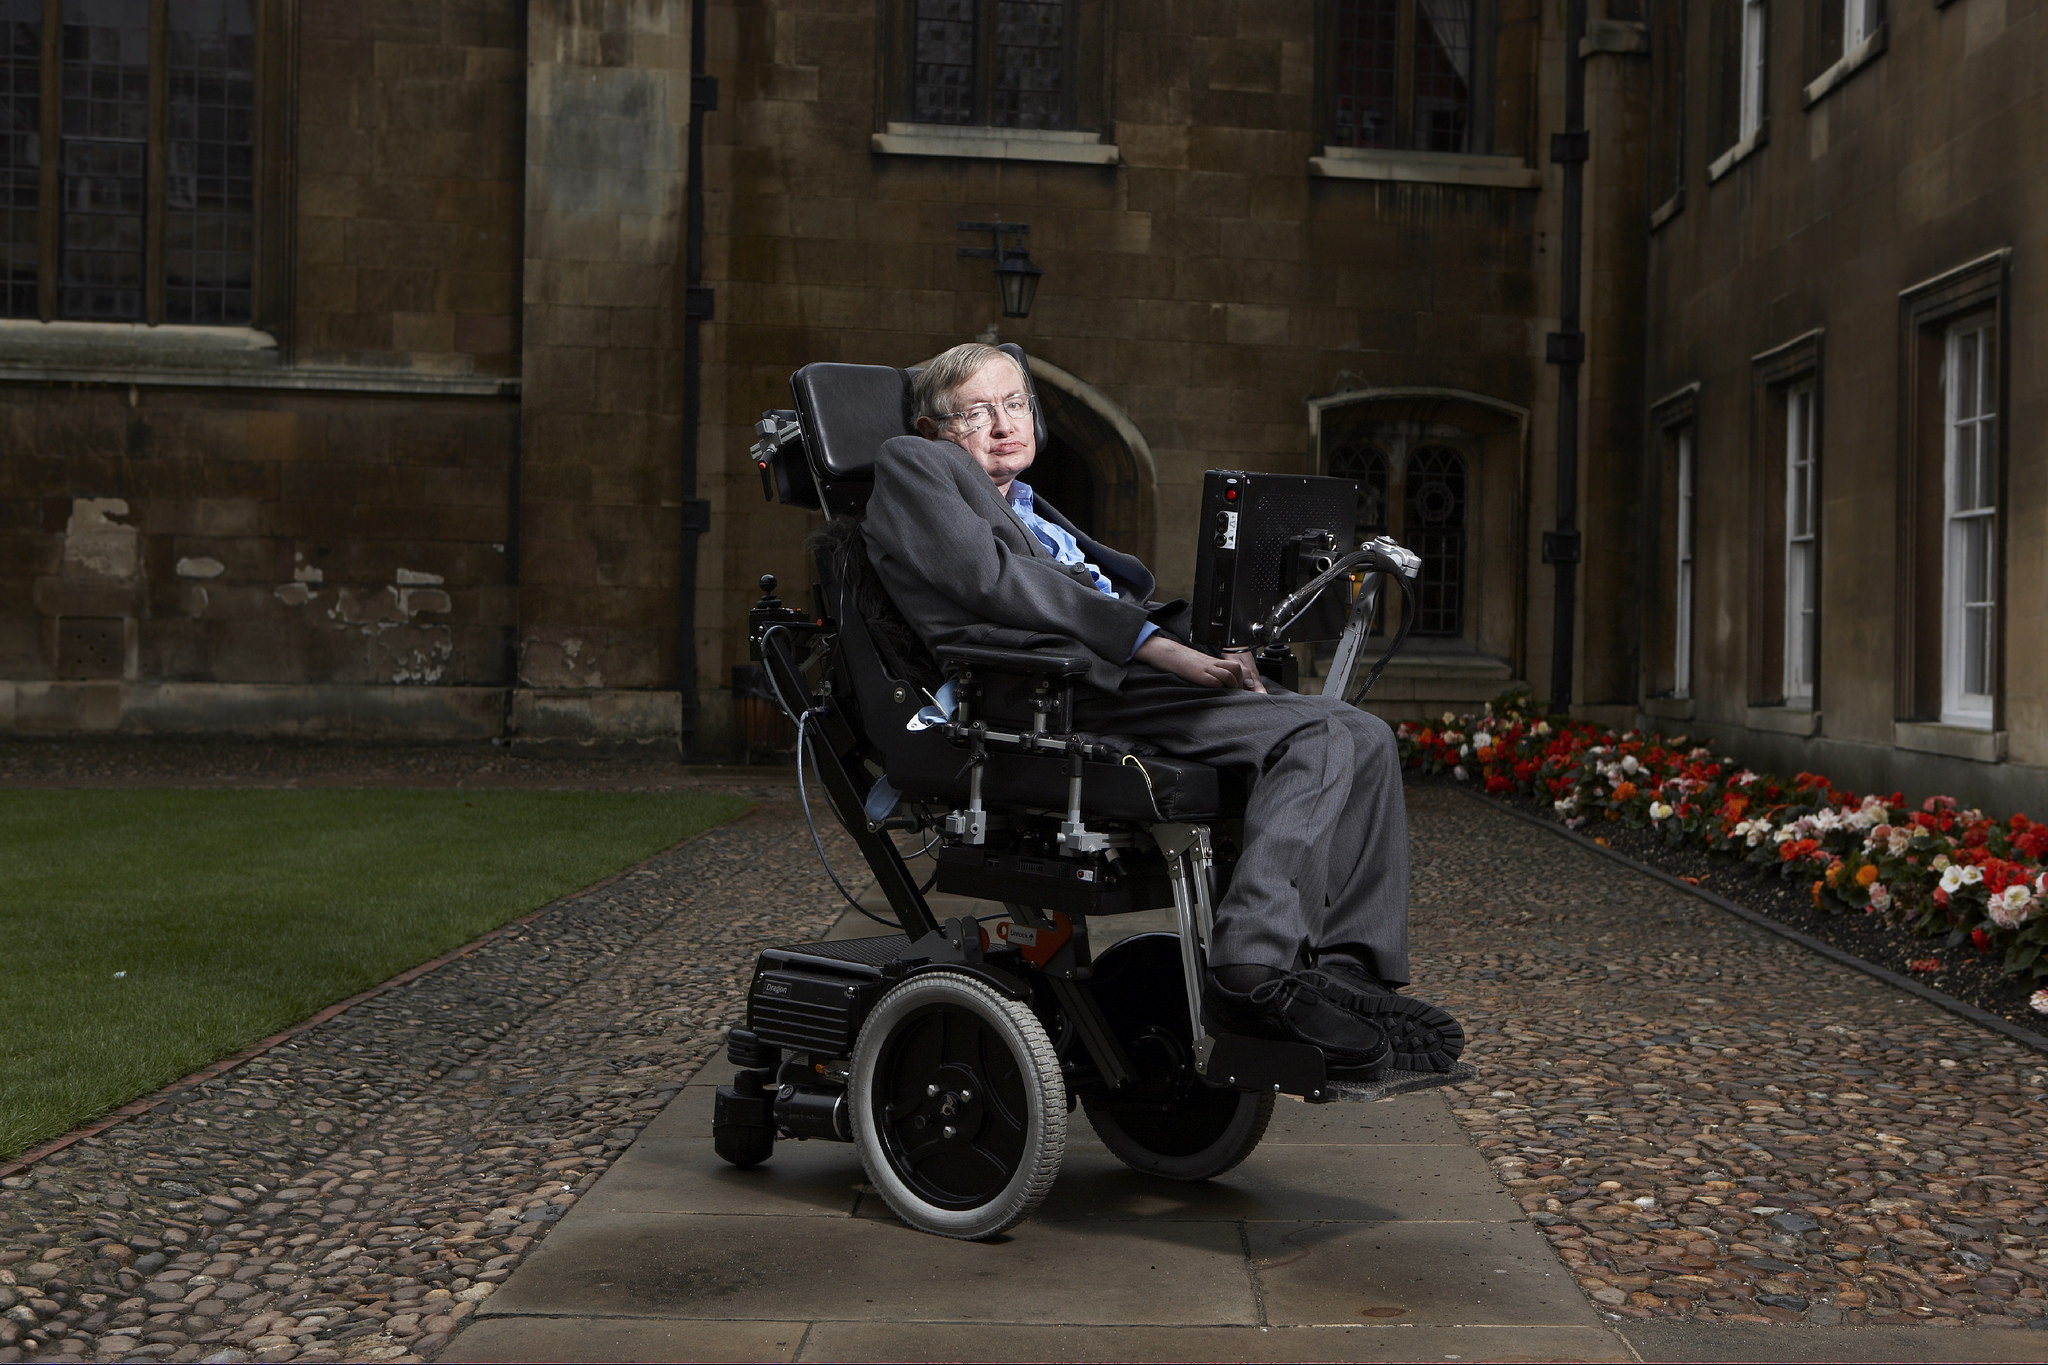 Celebrating Stephen Hawking and Also Celebrating Disability